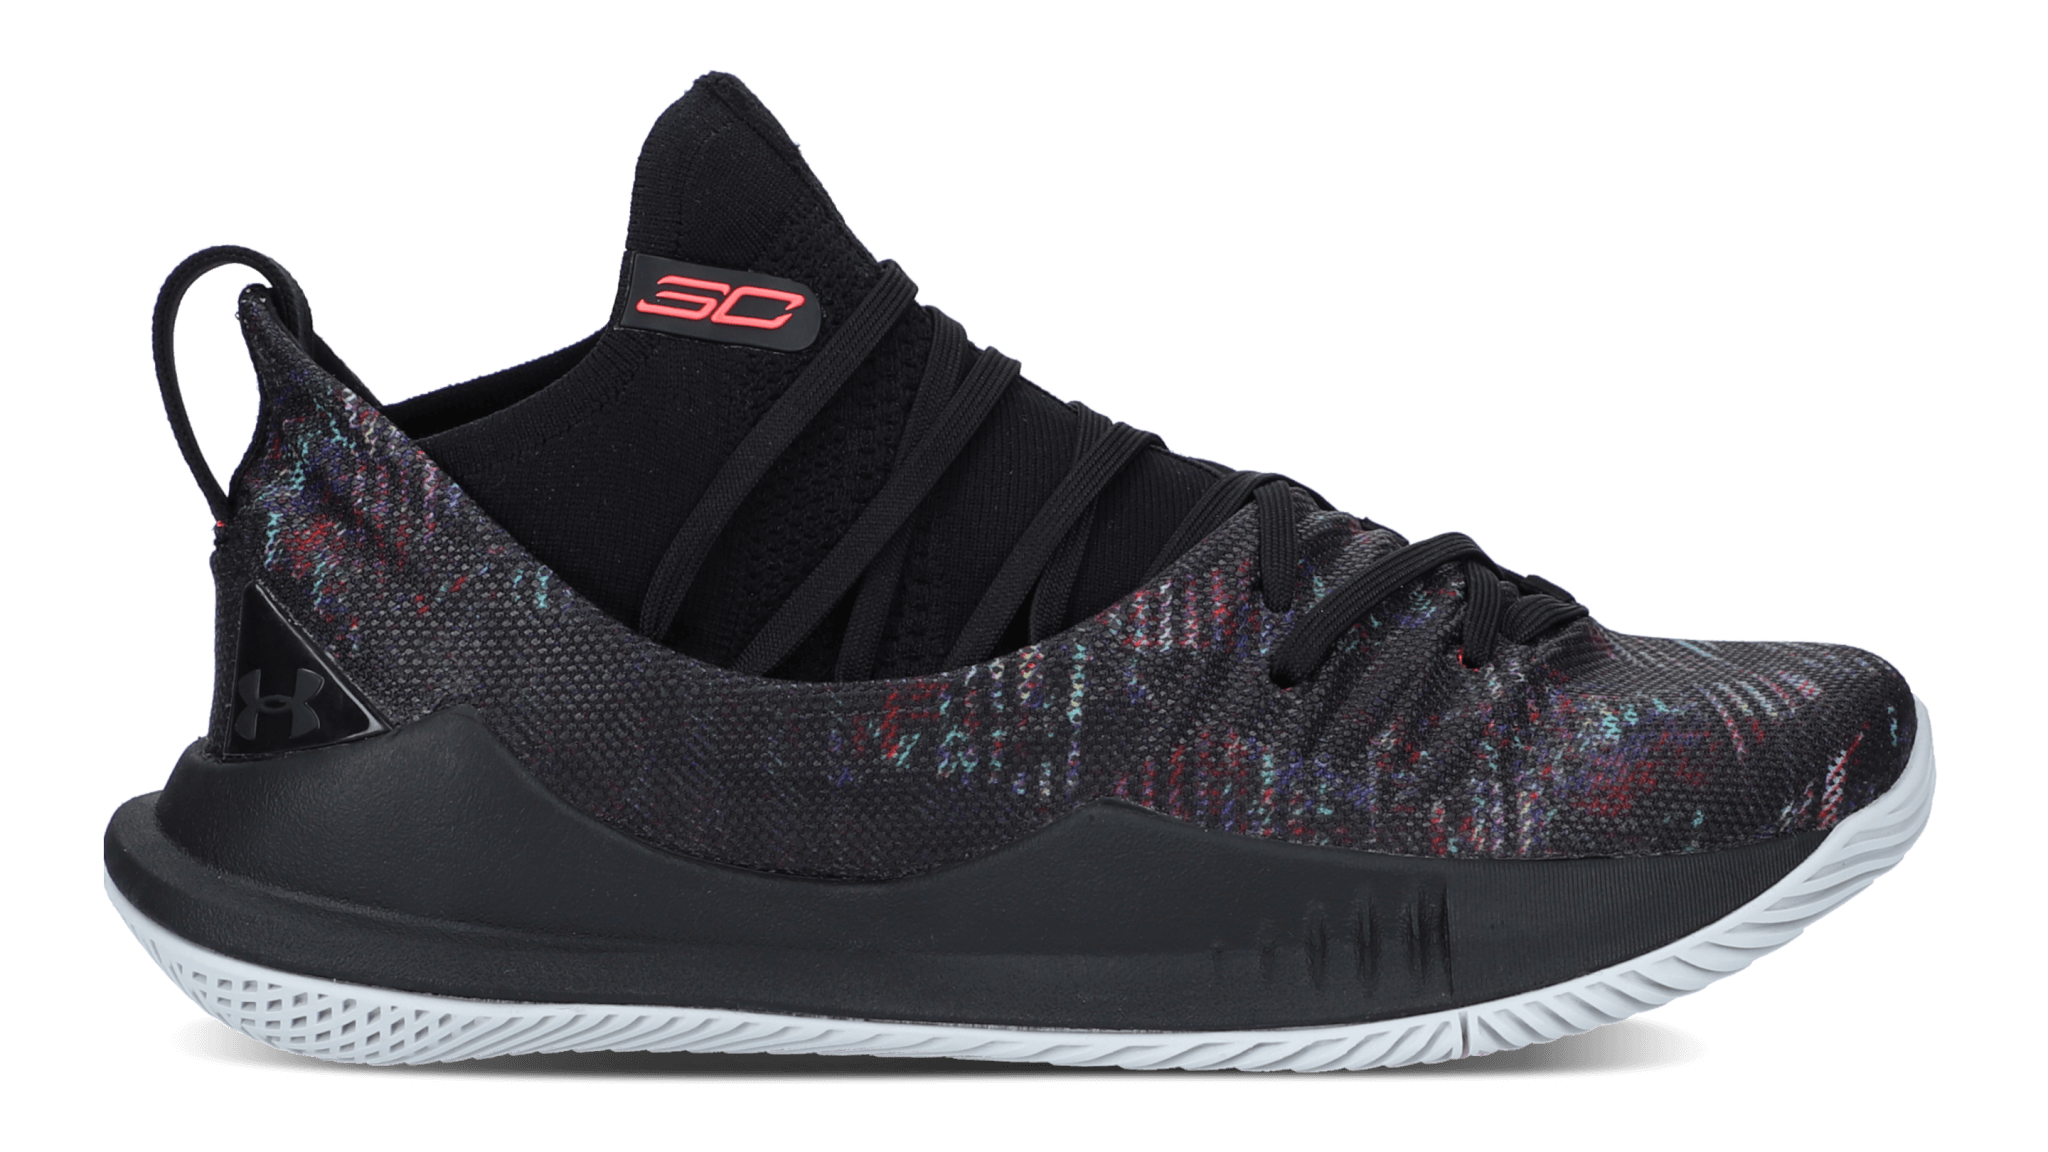 def310fb6274 Under Armour Curry 5 Performance Review